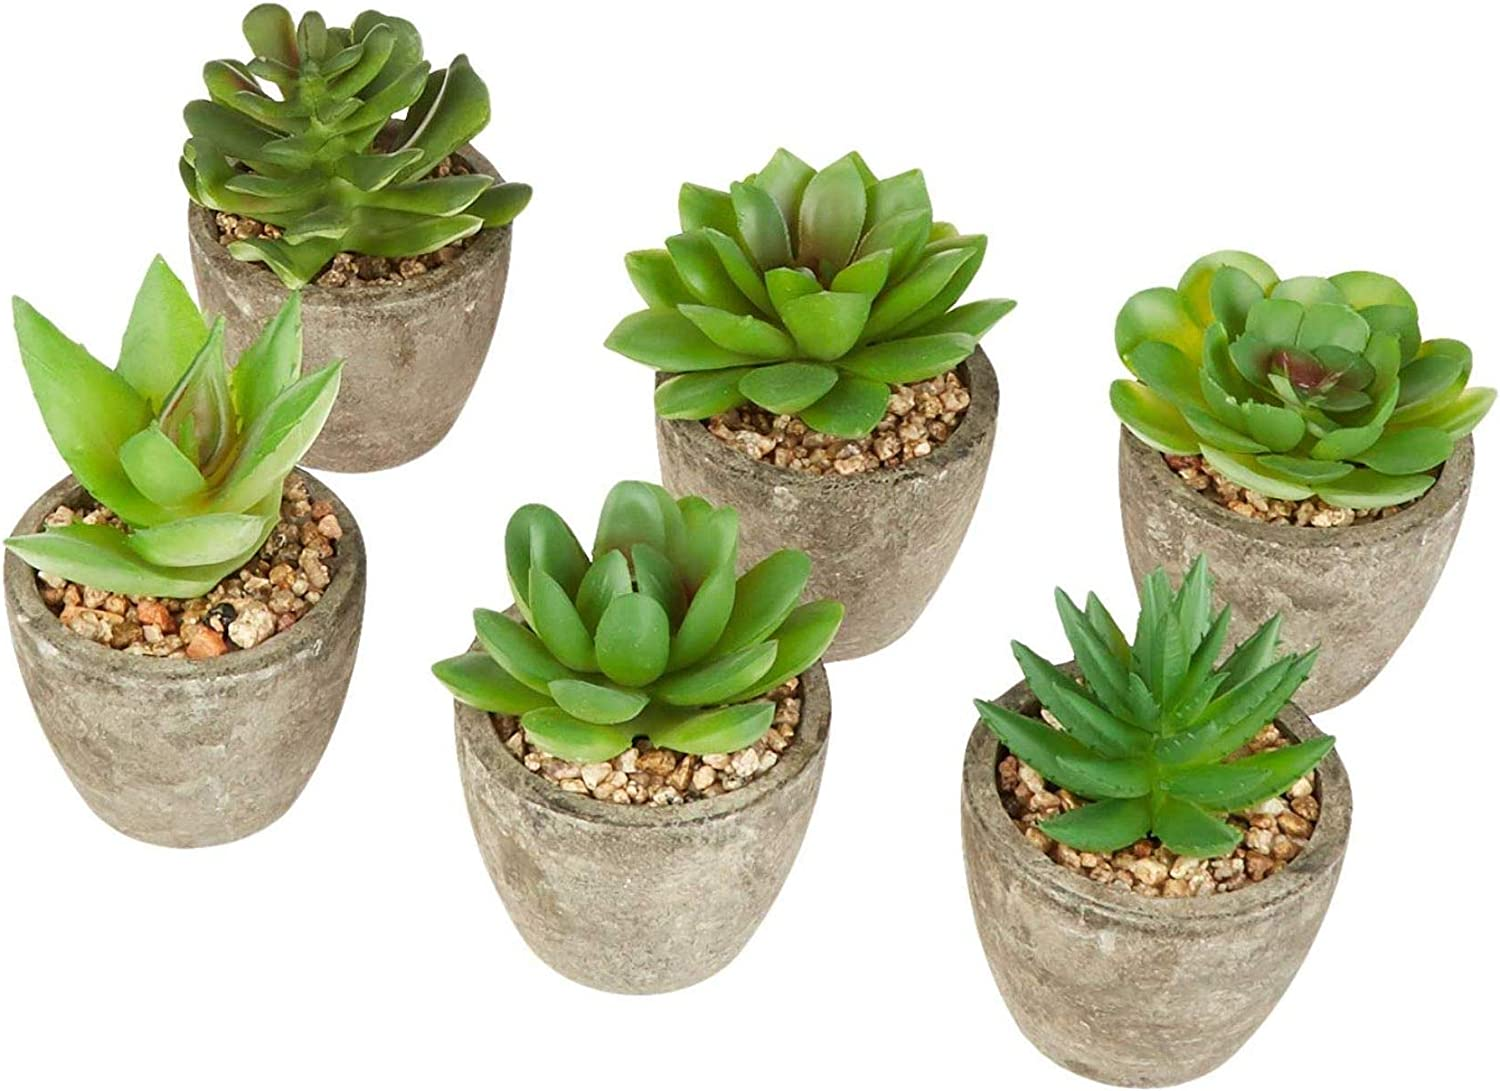 DuraBear Artificial Succulent Plants for Home Or Office | Set of 6 Fake Succulent Plants in Pots | Realistic Look and Feel Faux Succulents | Mini Succulent Plants | Faux Plant Succulent Decor